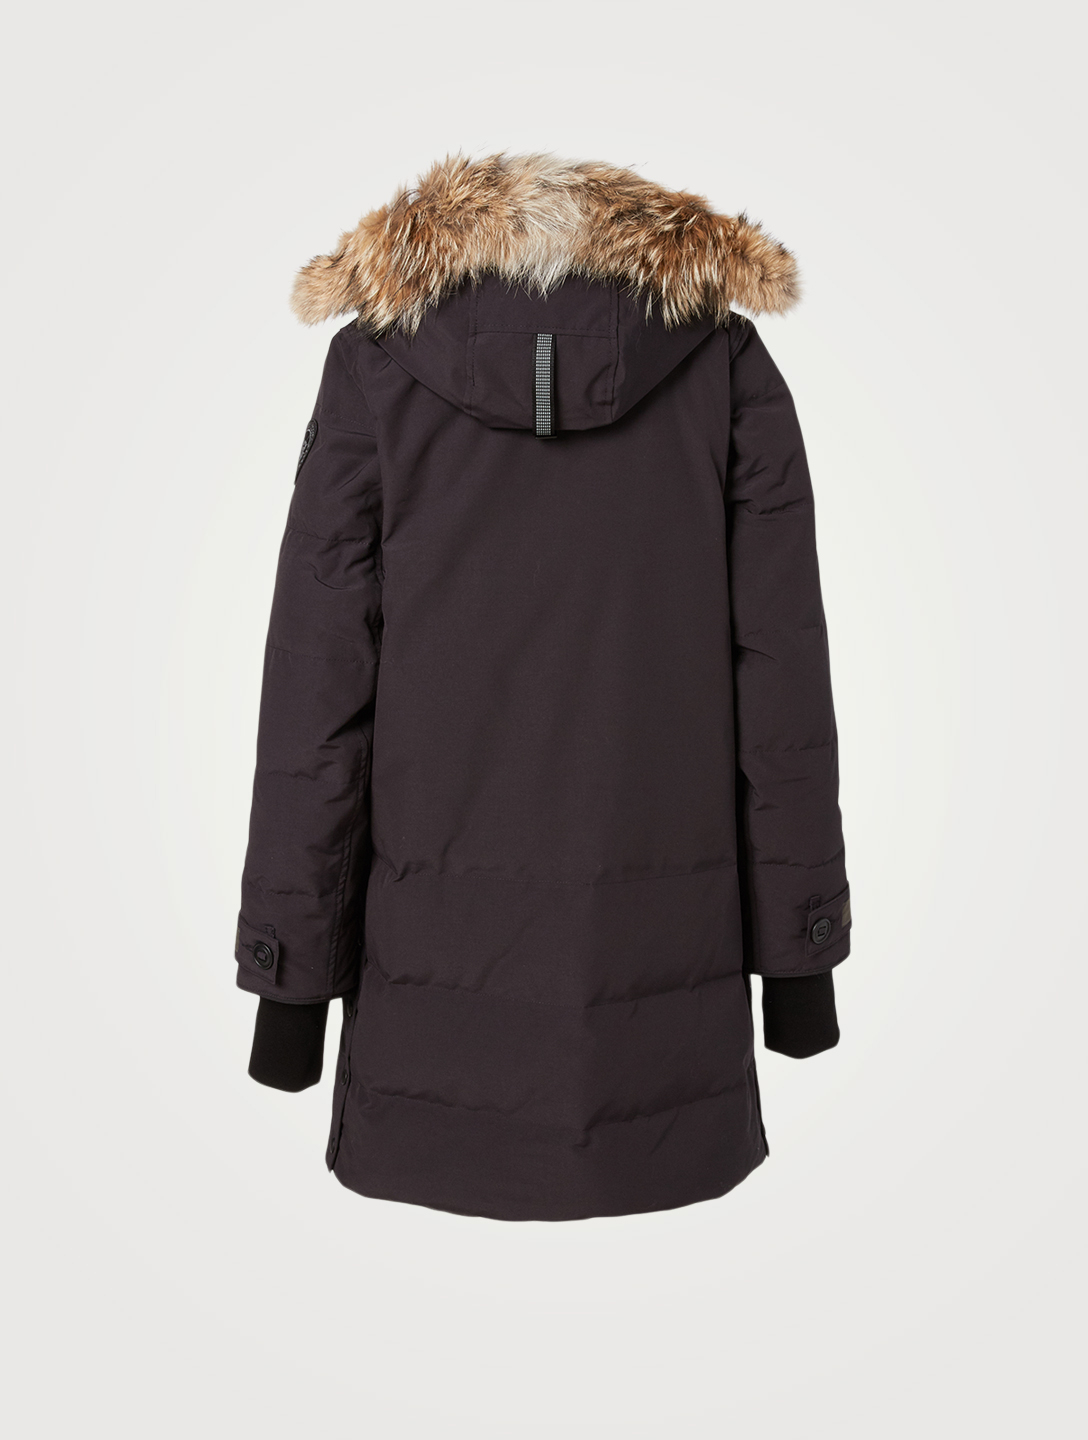 CANADA GOOSE Kenton Black Label Down Parka With Fur Hood Women's Blue